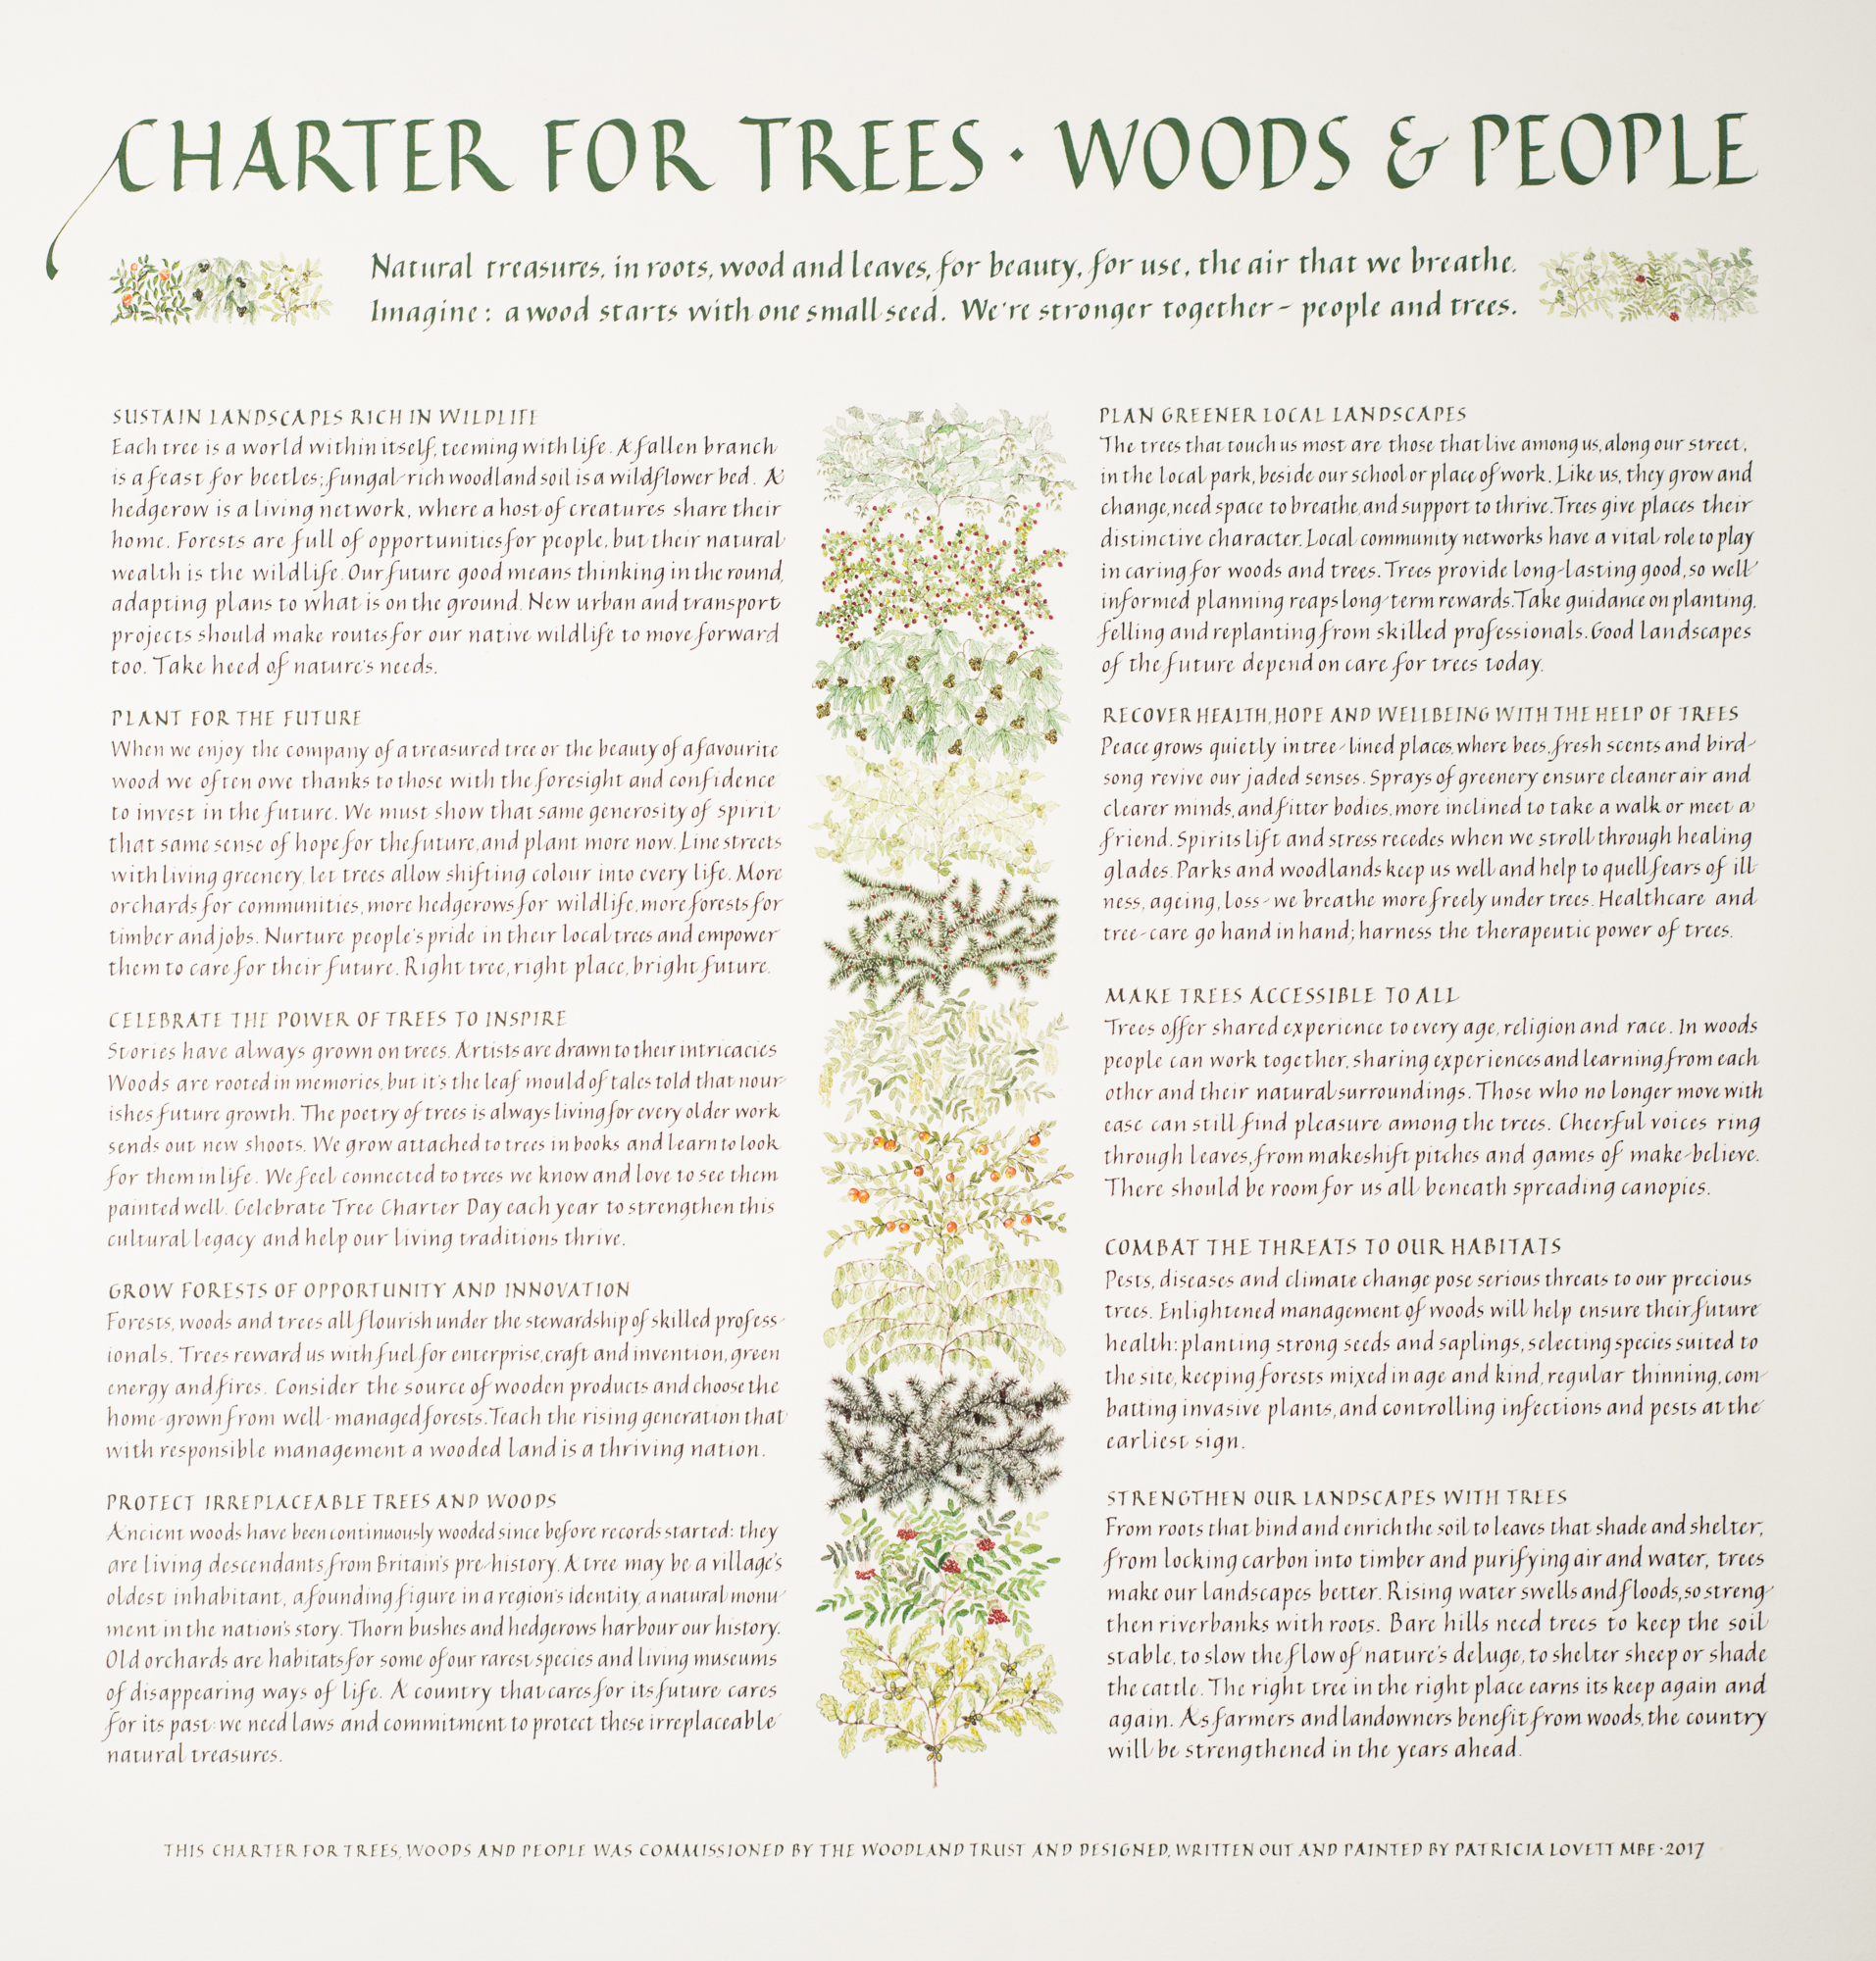 Charter for Trees, Woods and People | Patricia Lovett MBE